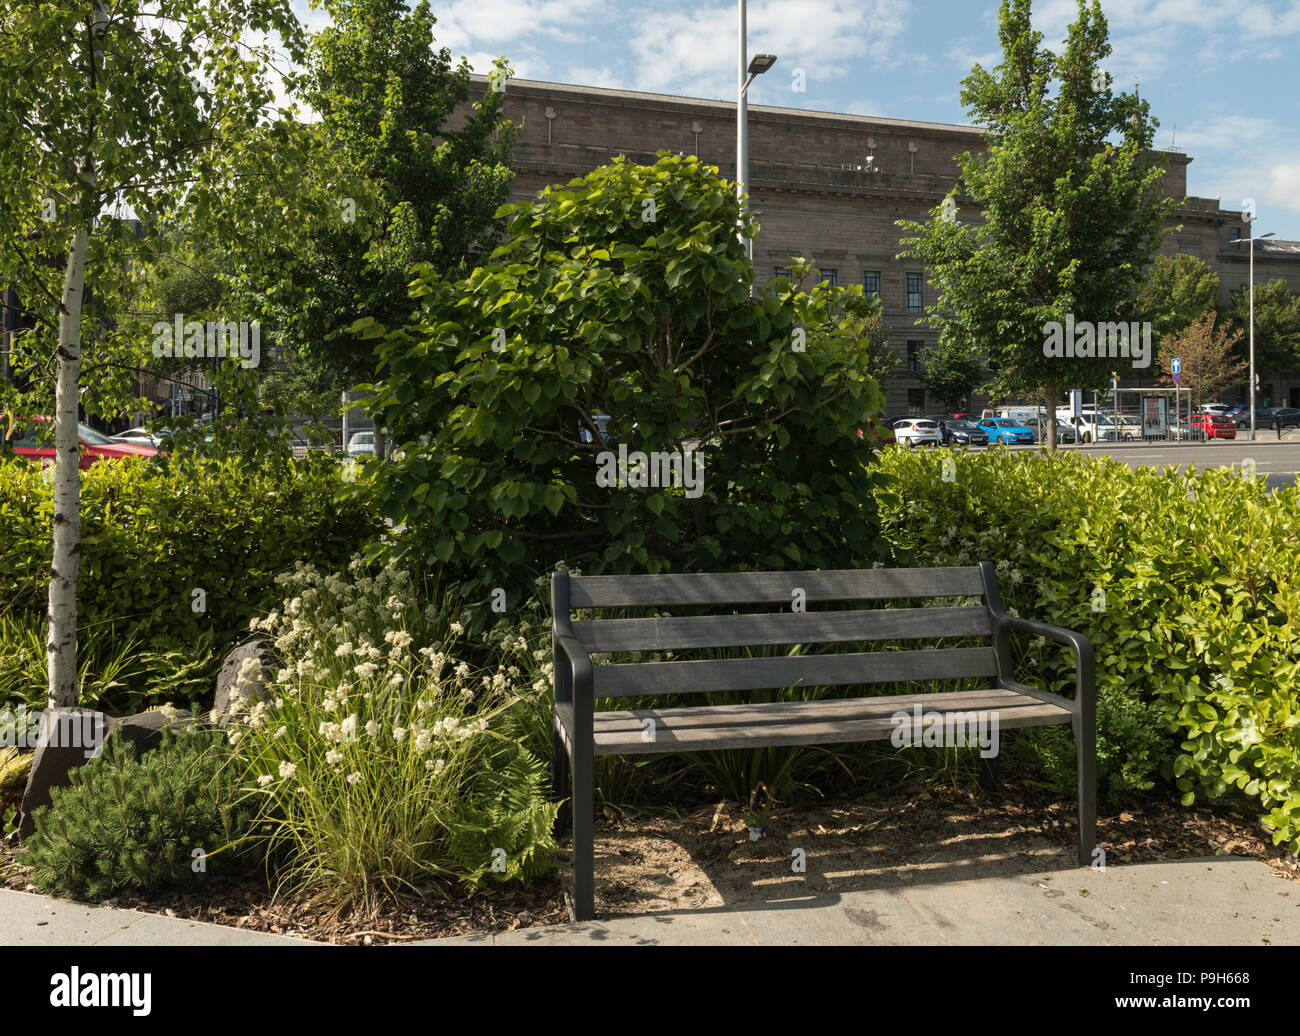 The Baltic connections pocket garden, in Slessor Gardens, is part of the Dundee Waterfront development scheme, Dundee, Scotland, UK. - Stock Image